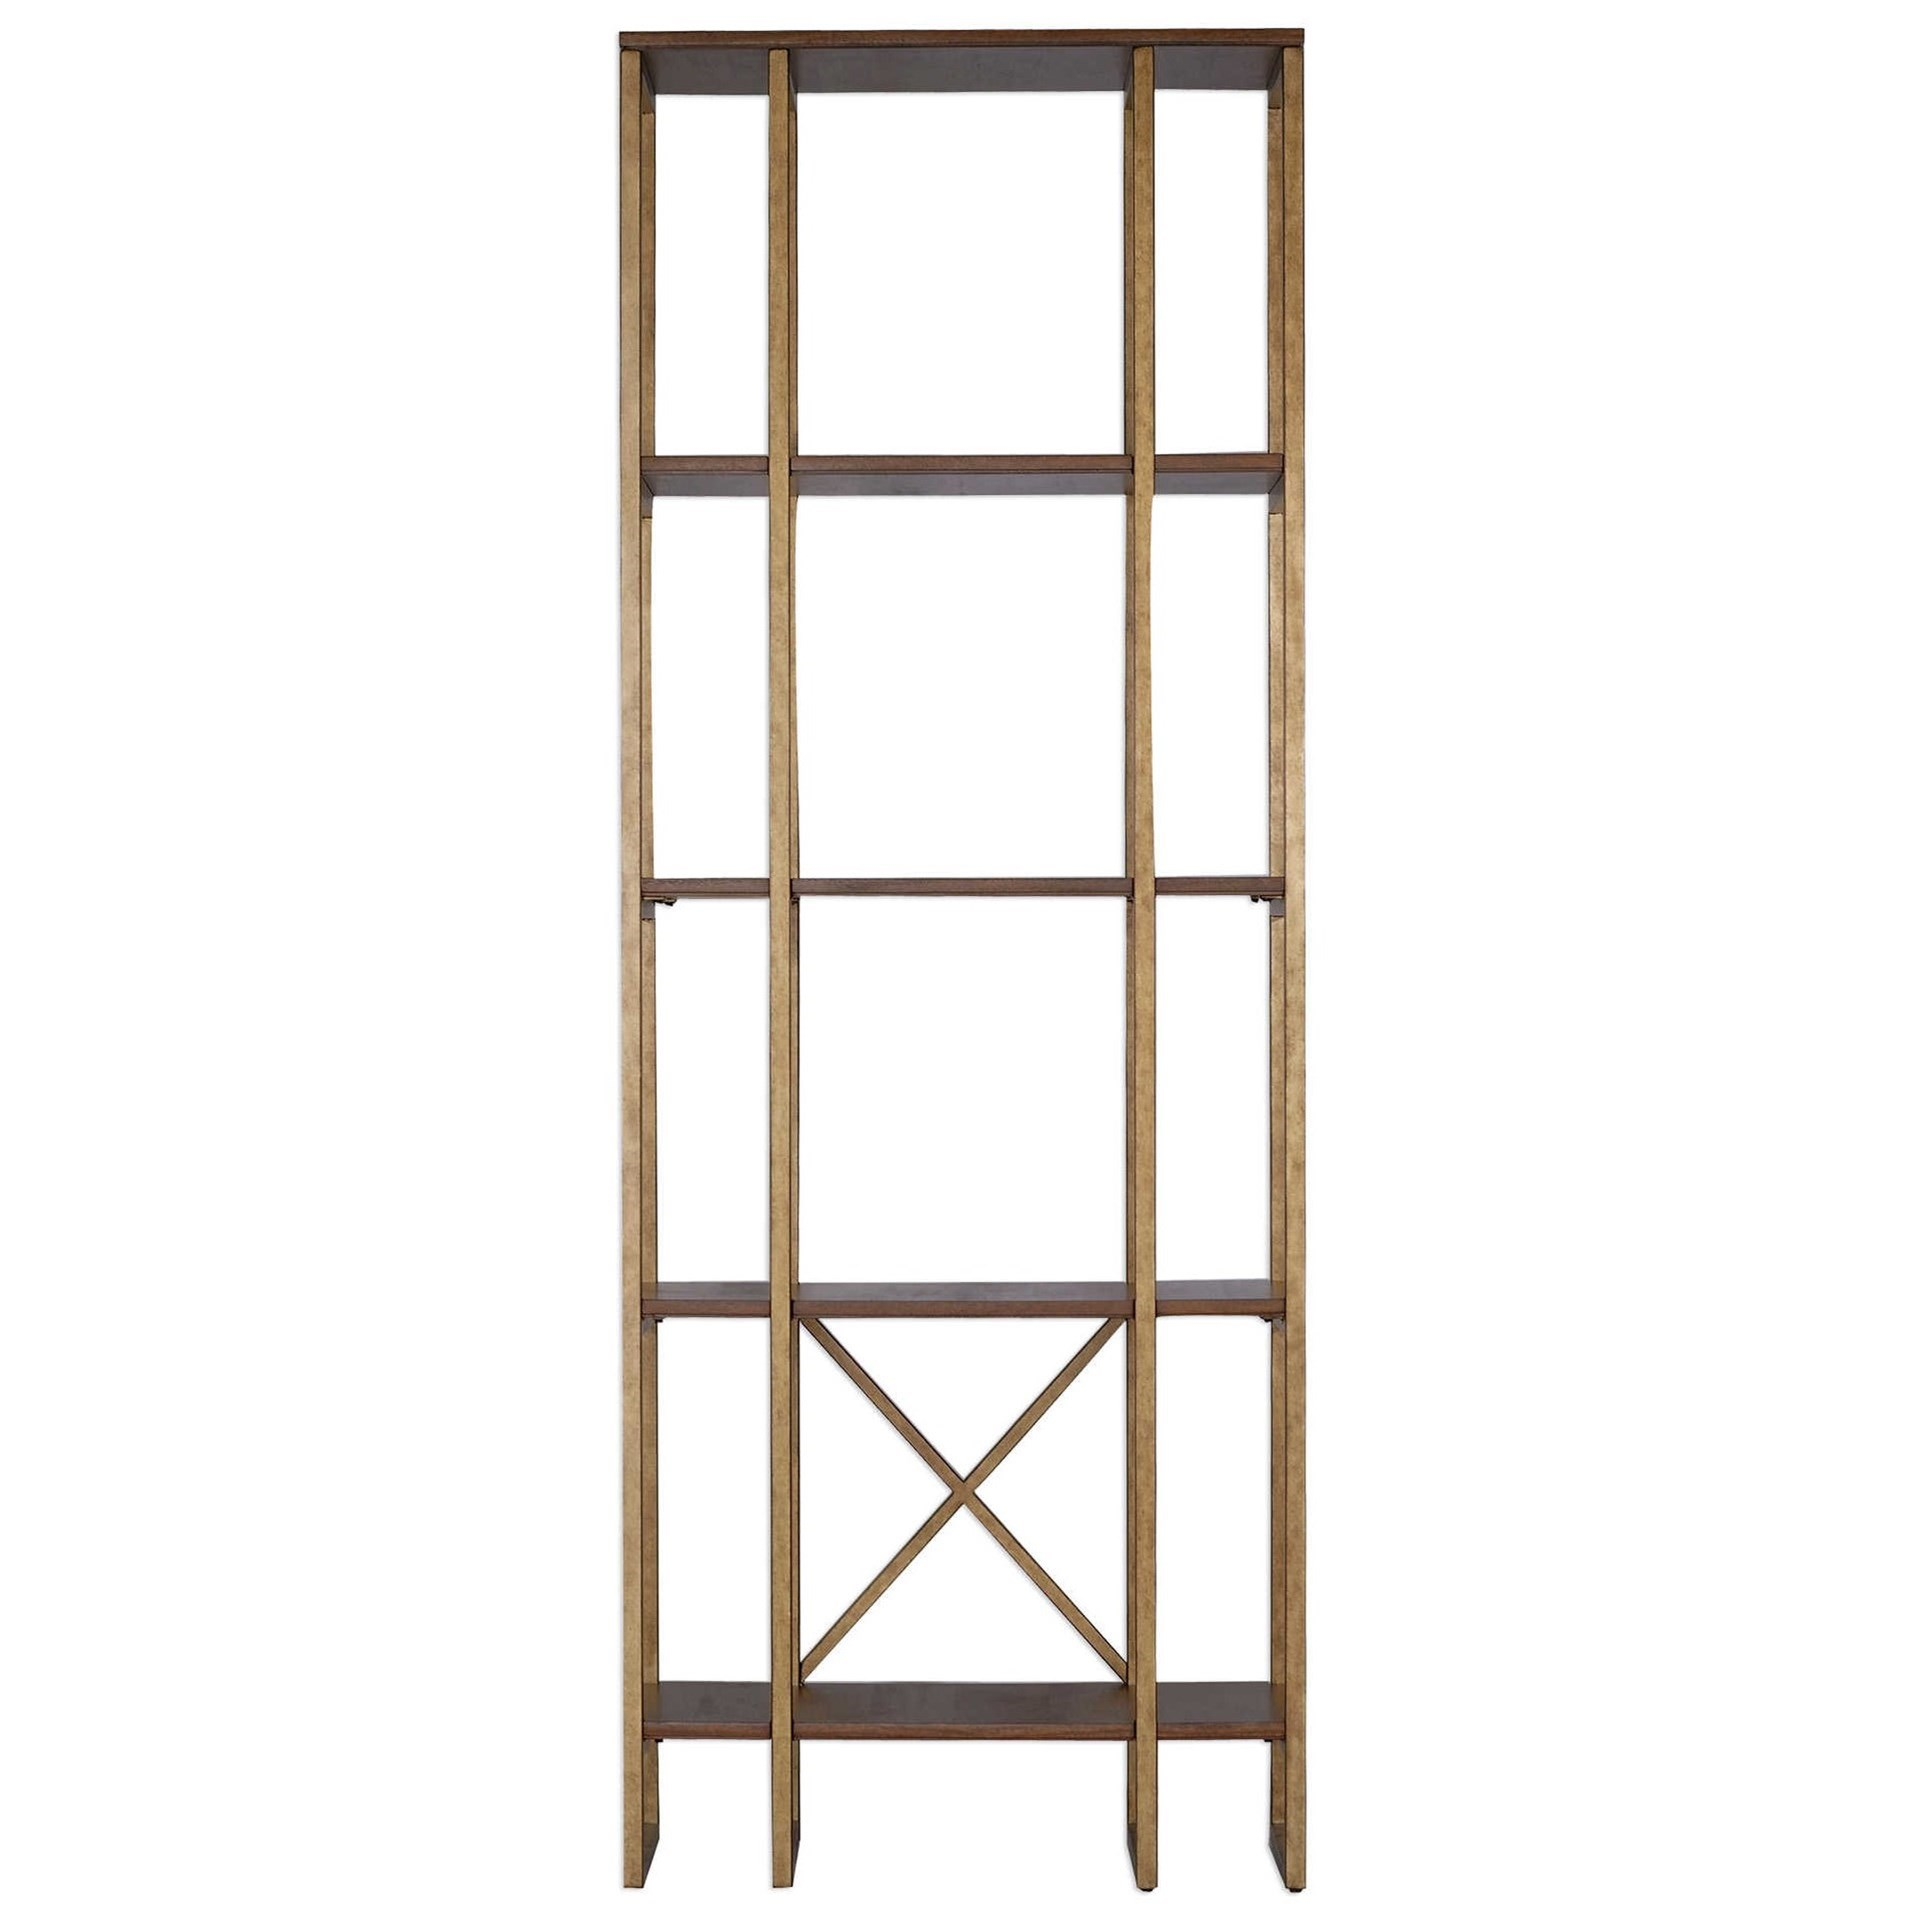 Accent Furniture - Bookcases Karishma Antique Gold Etagere by Uttermost at Dunk & Bright Furniture